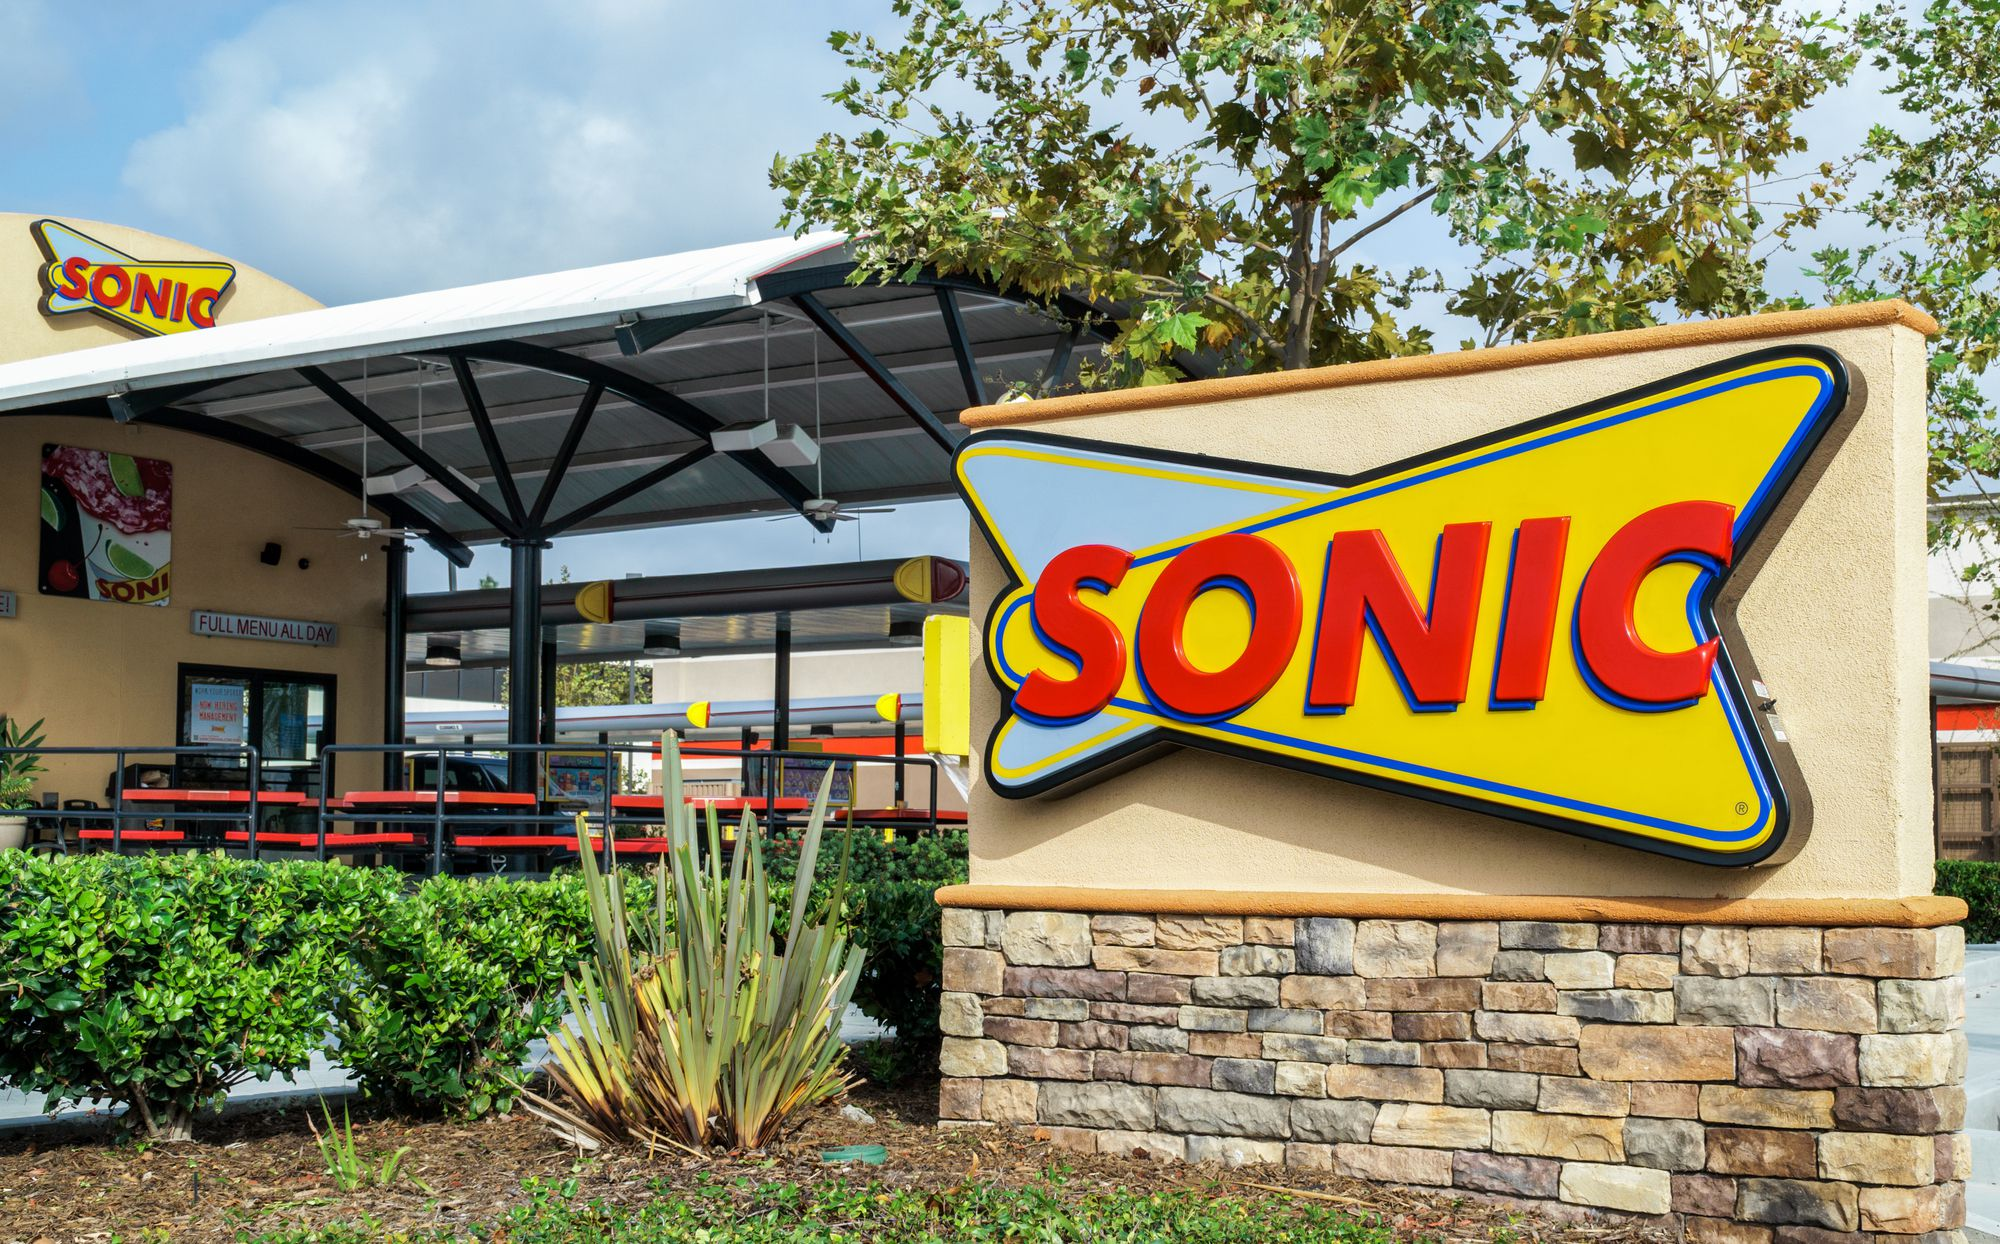 TalktoSonic - Win Free Route 44 Drink - Sonic Survey